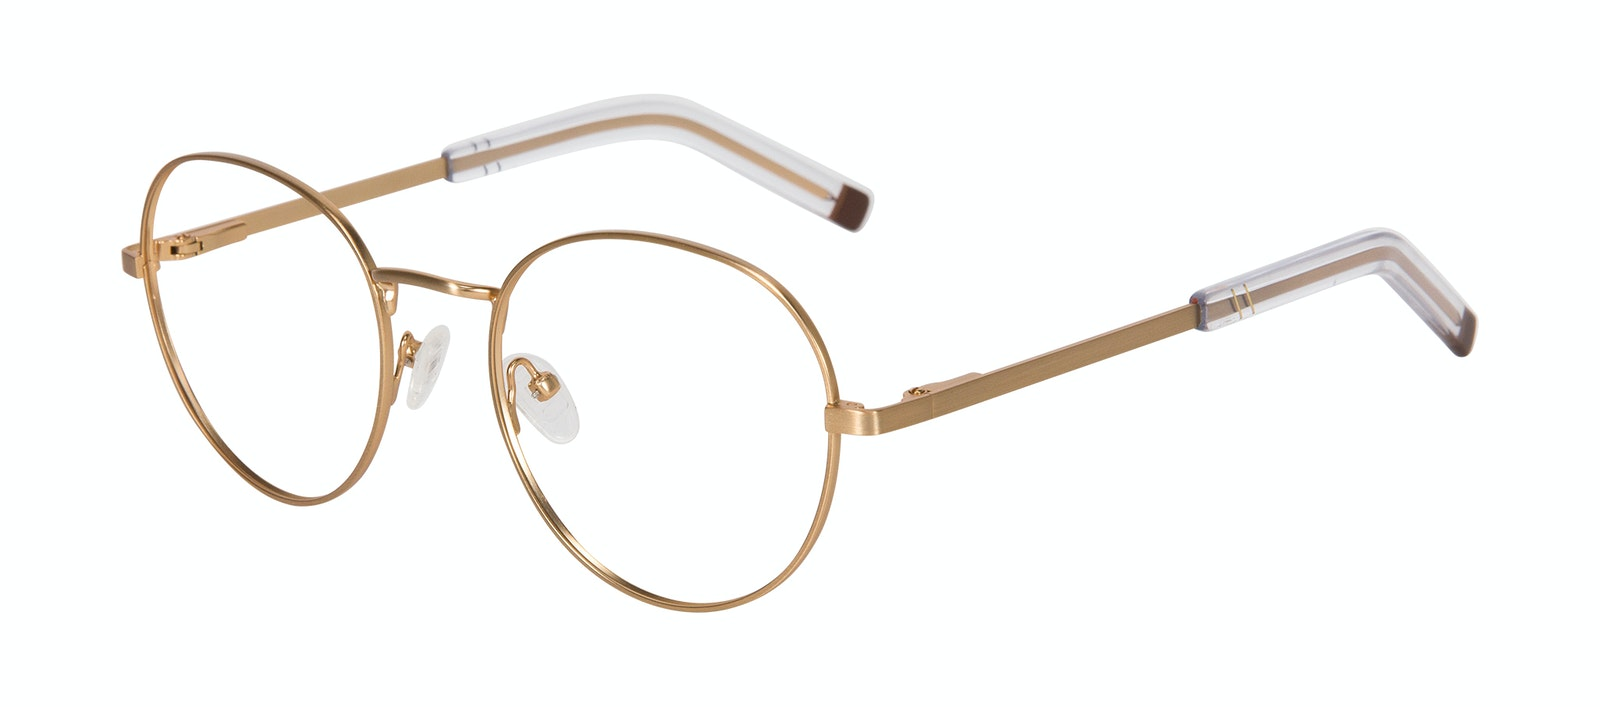 Affordable Fashion Glasses Round Eyeglasses Men Lean XL Gold Matte Tilt